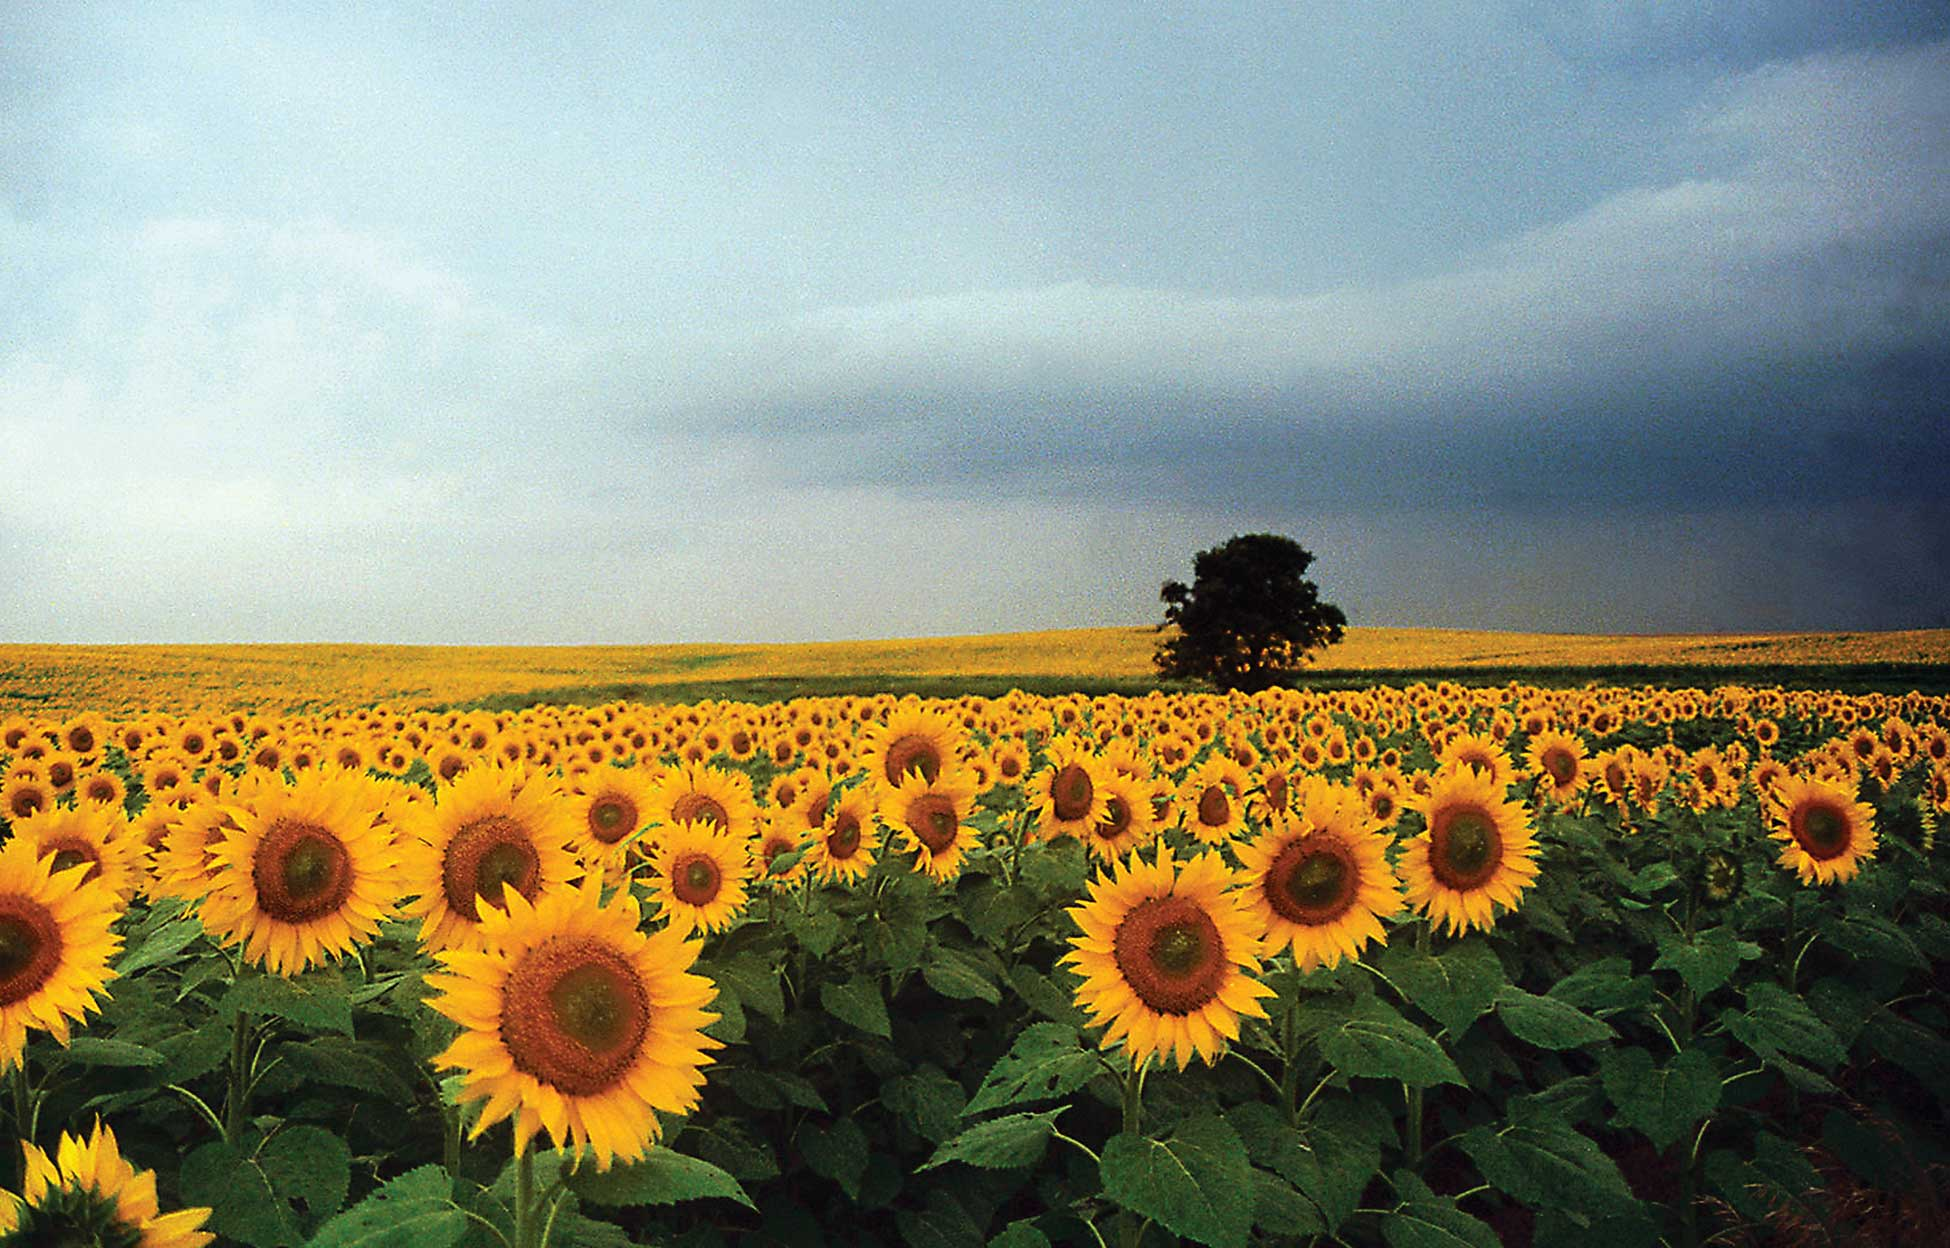 Figure 86. Sunflowers